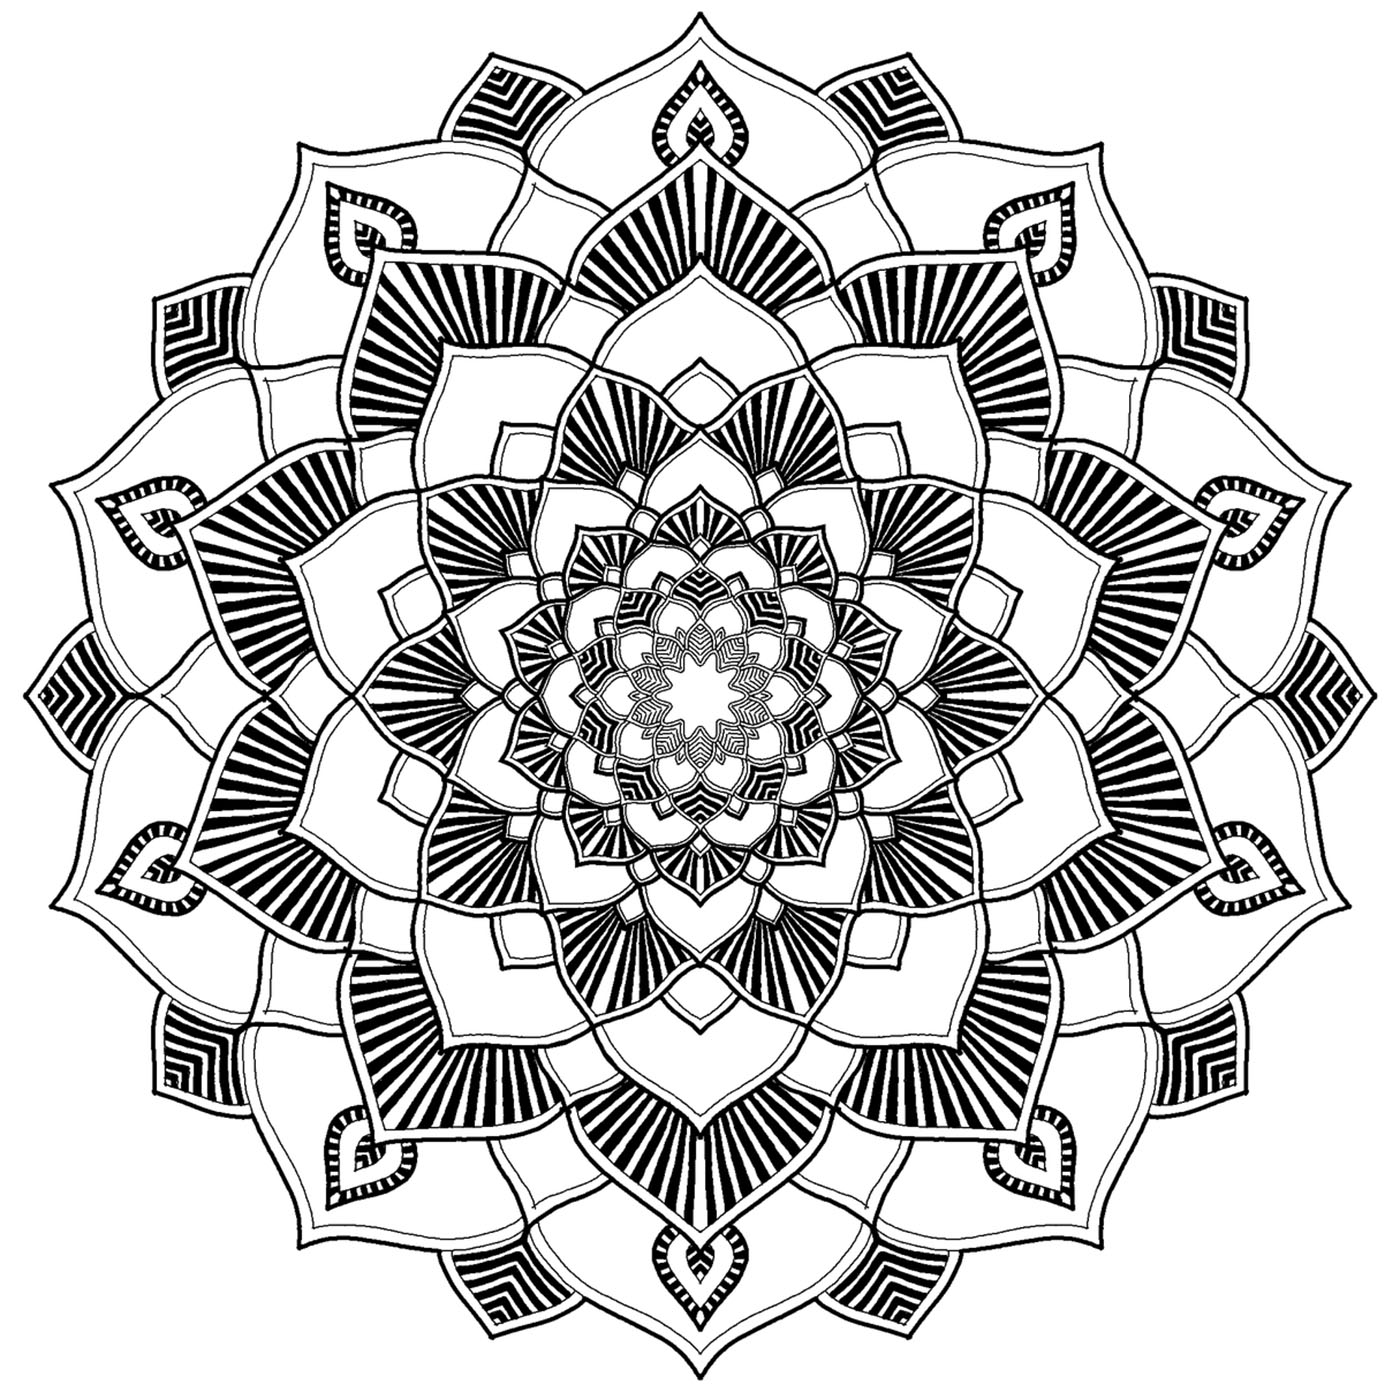 A Mandala not too difficult, suitable for those who want to color and thinking to nothing else. Its patterns are just beautiful !